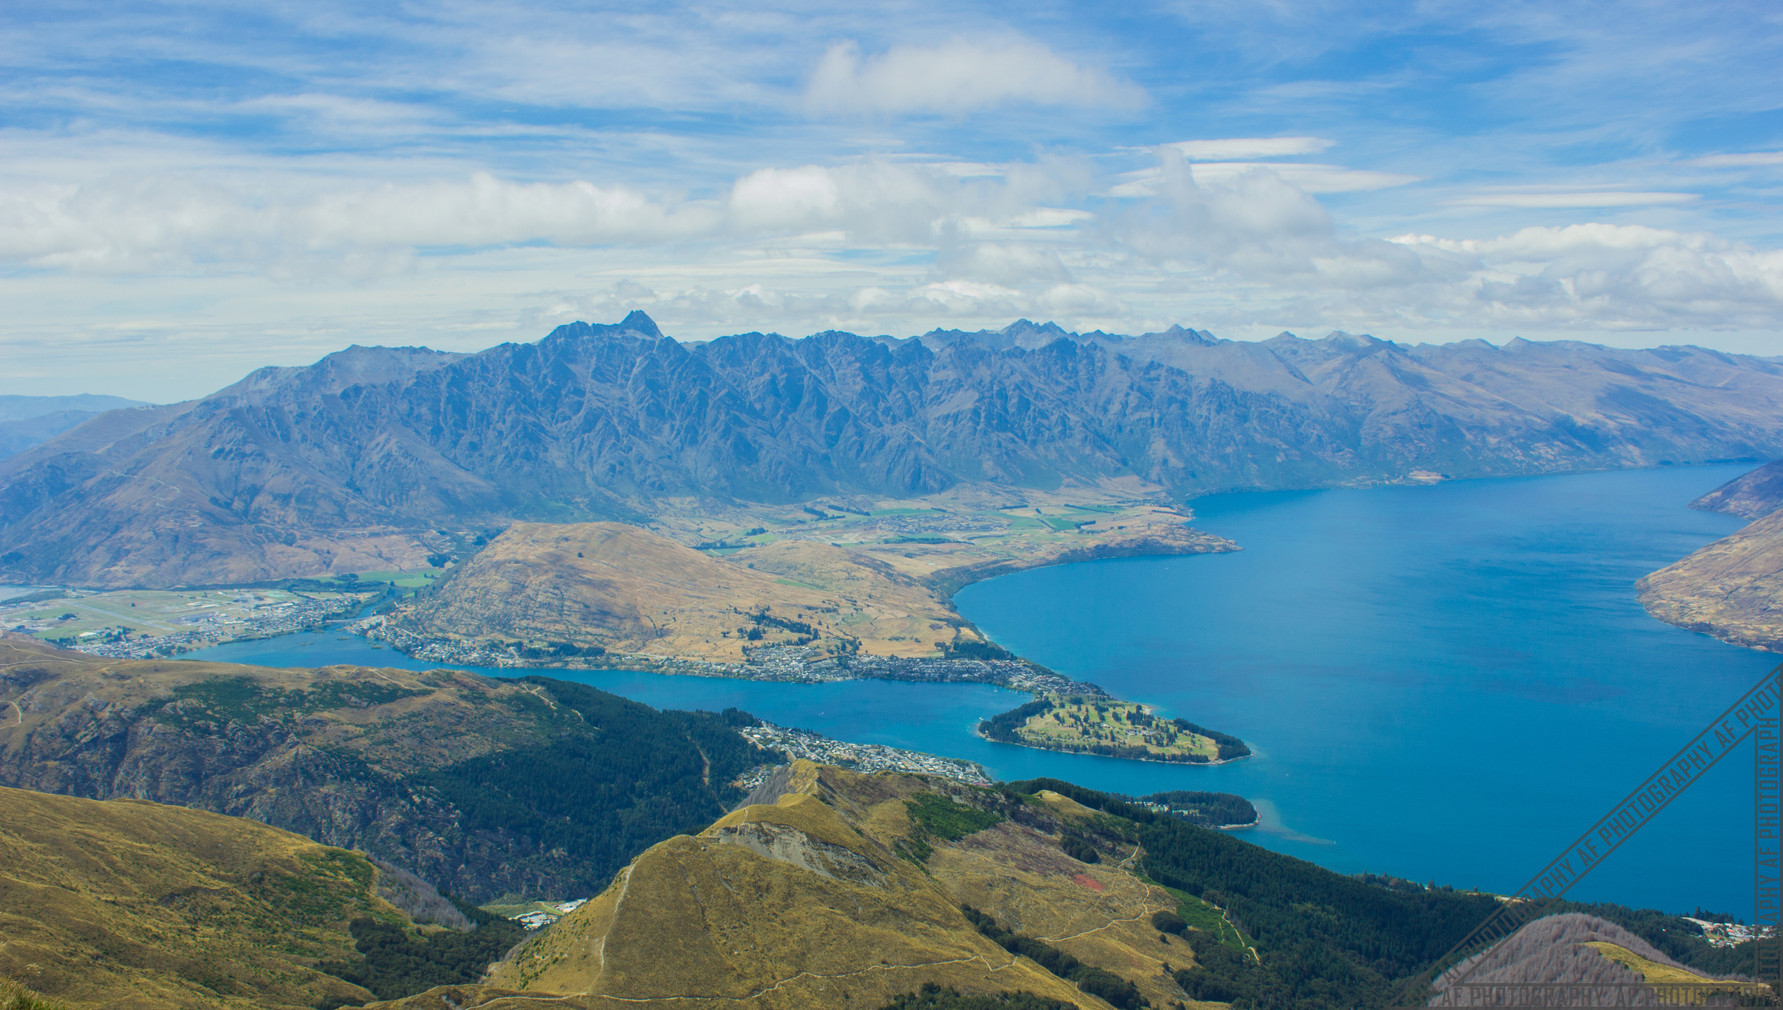 Mount Ben Lomond Queenstown New Zealand NZ099